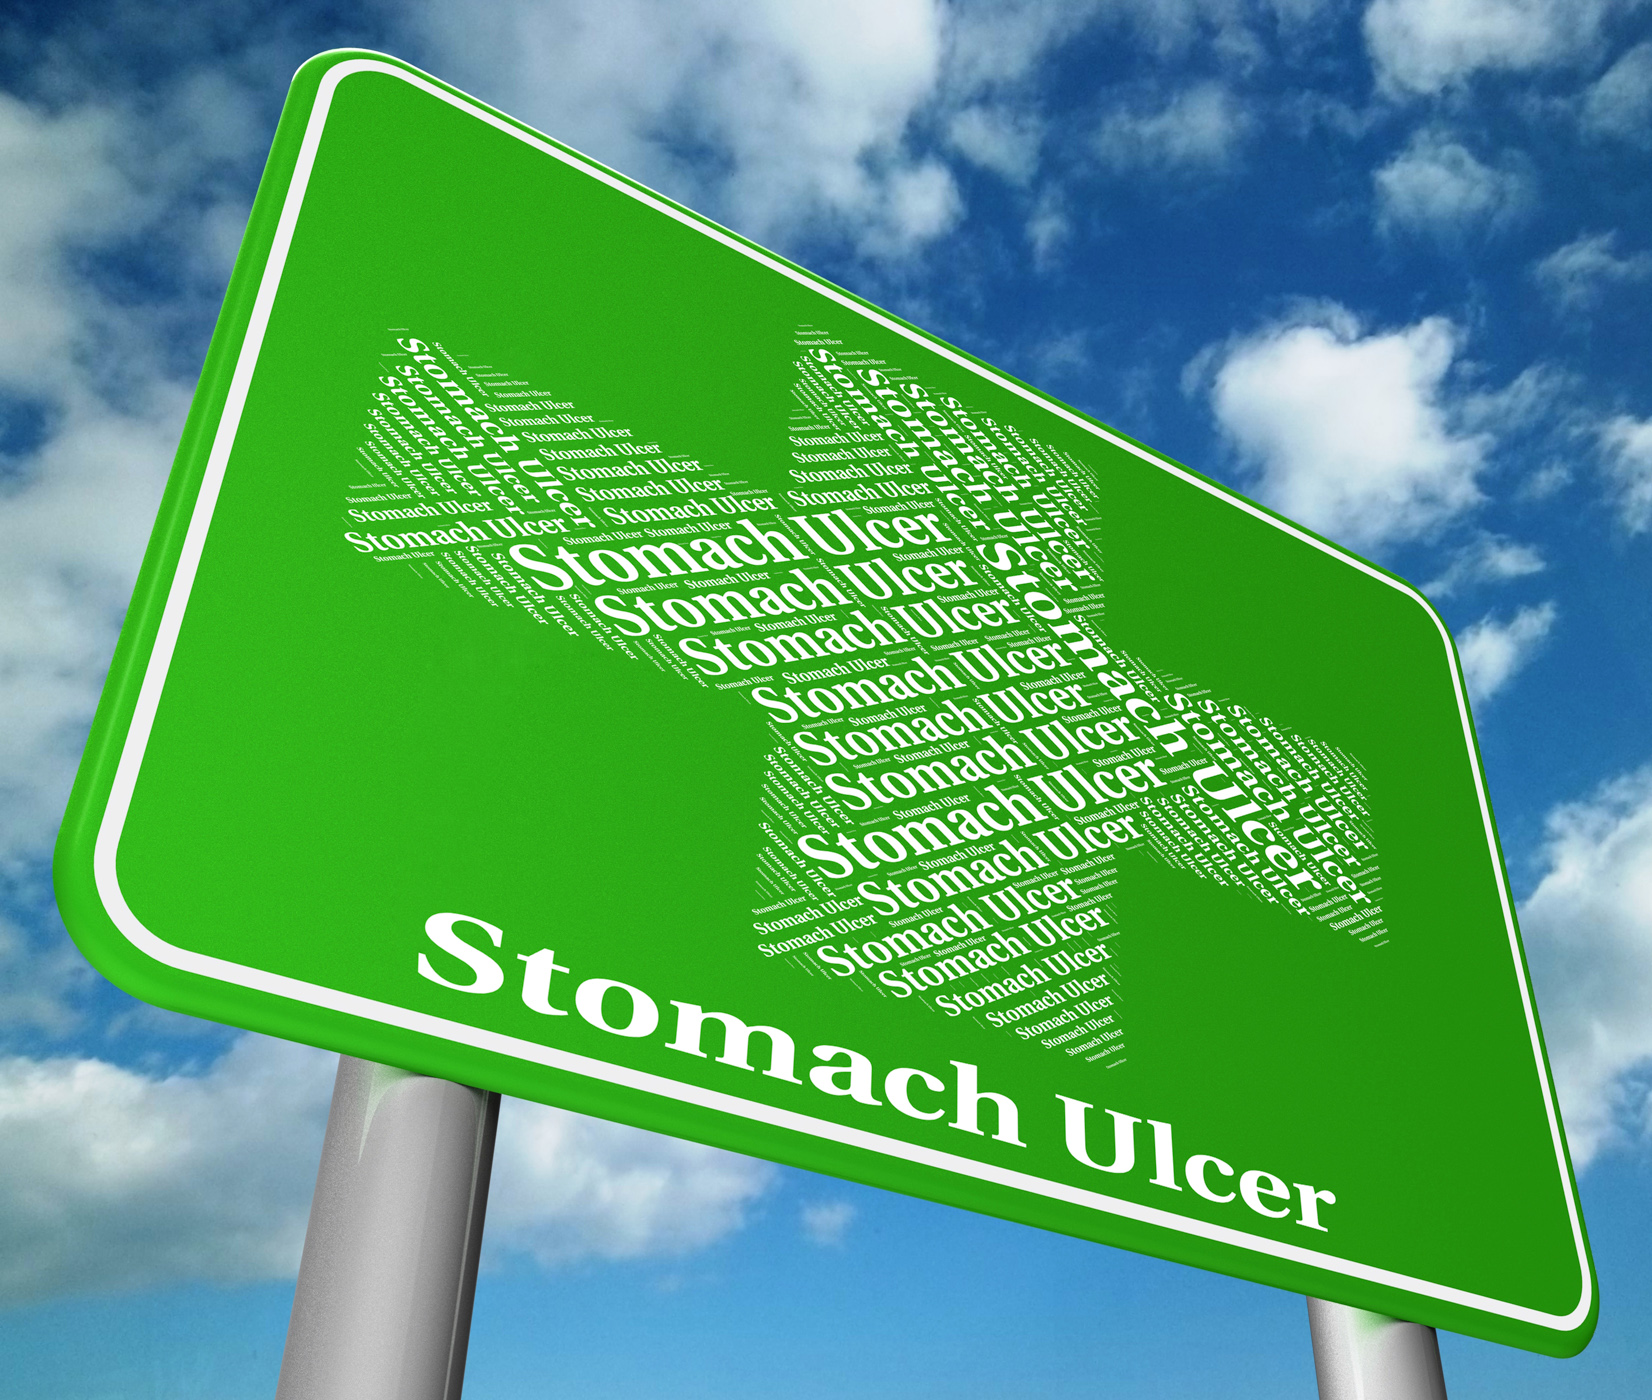 Stomach ulcer indicates ill health and abdomens photo